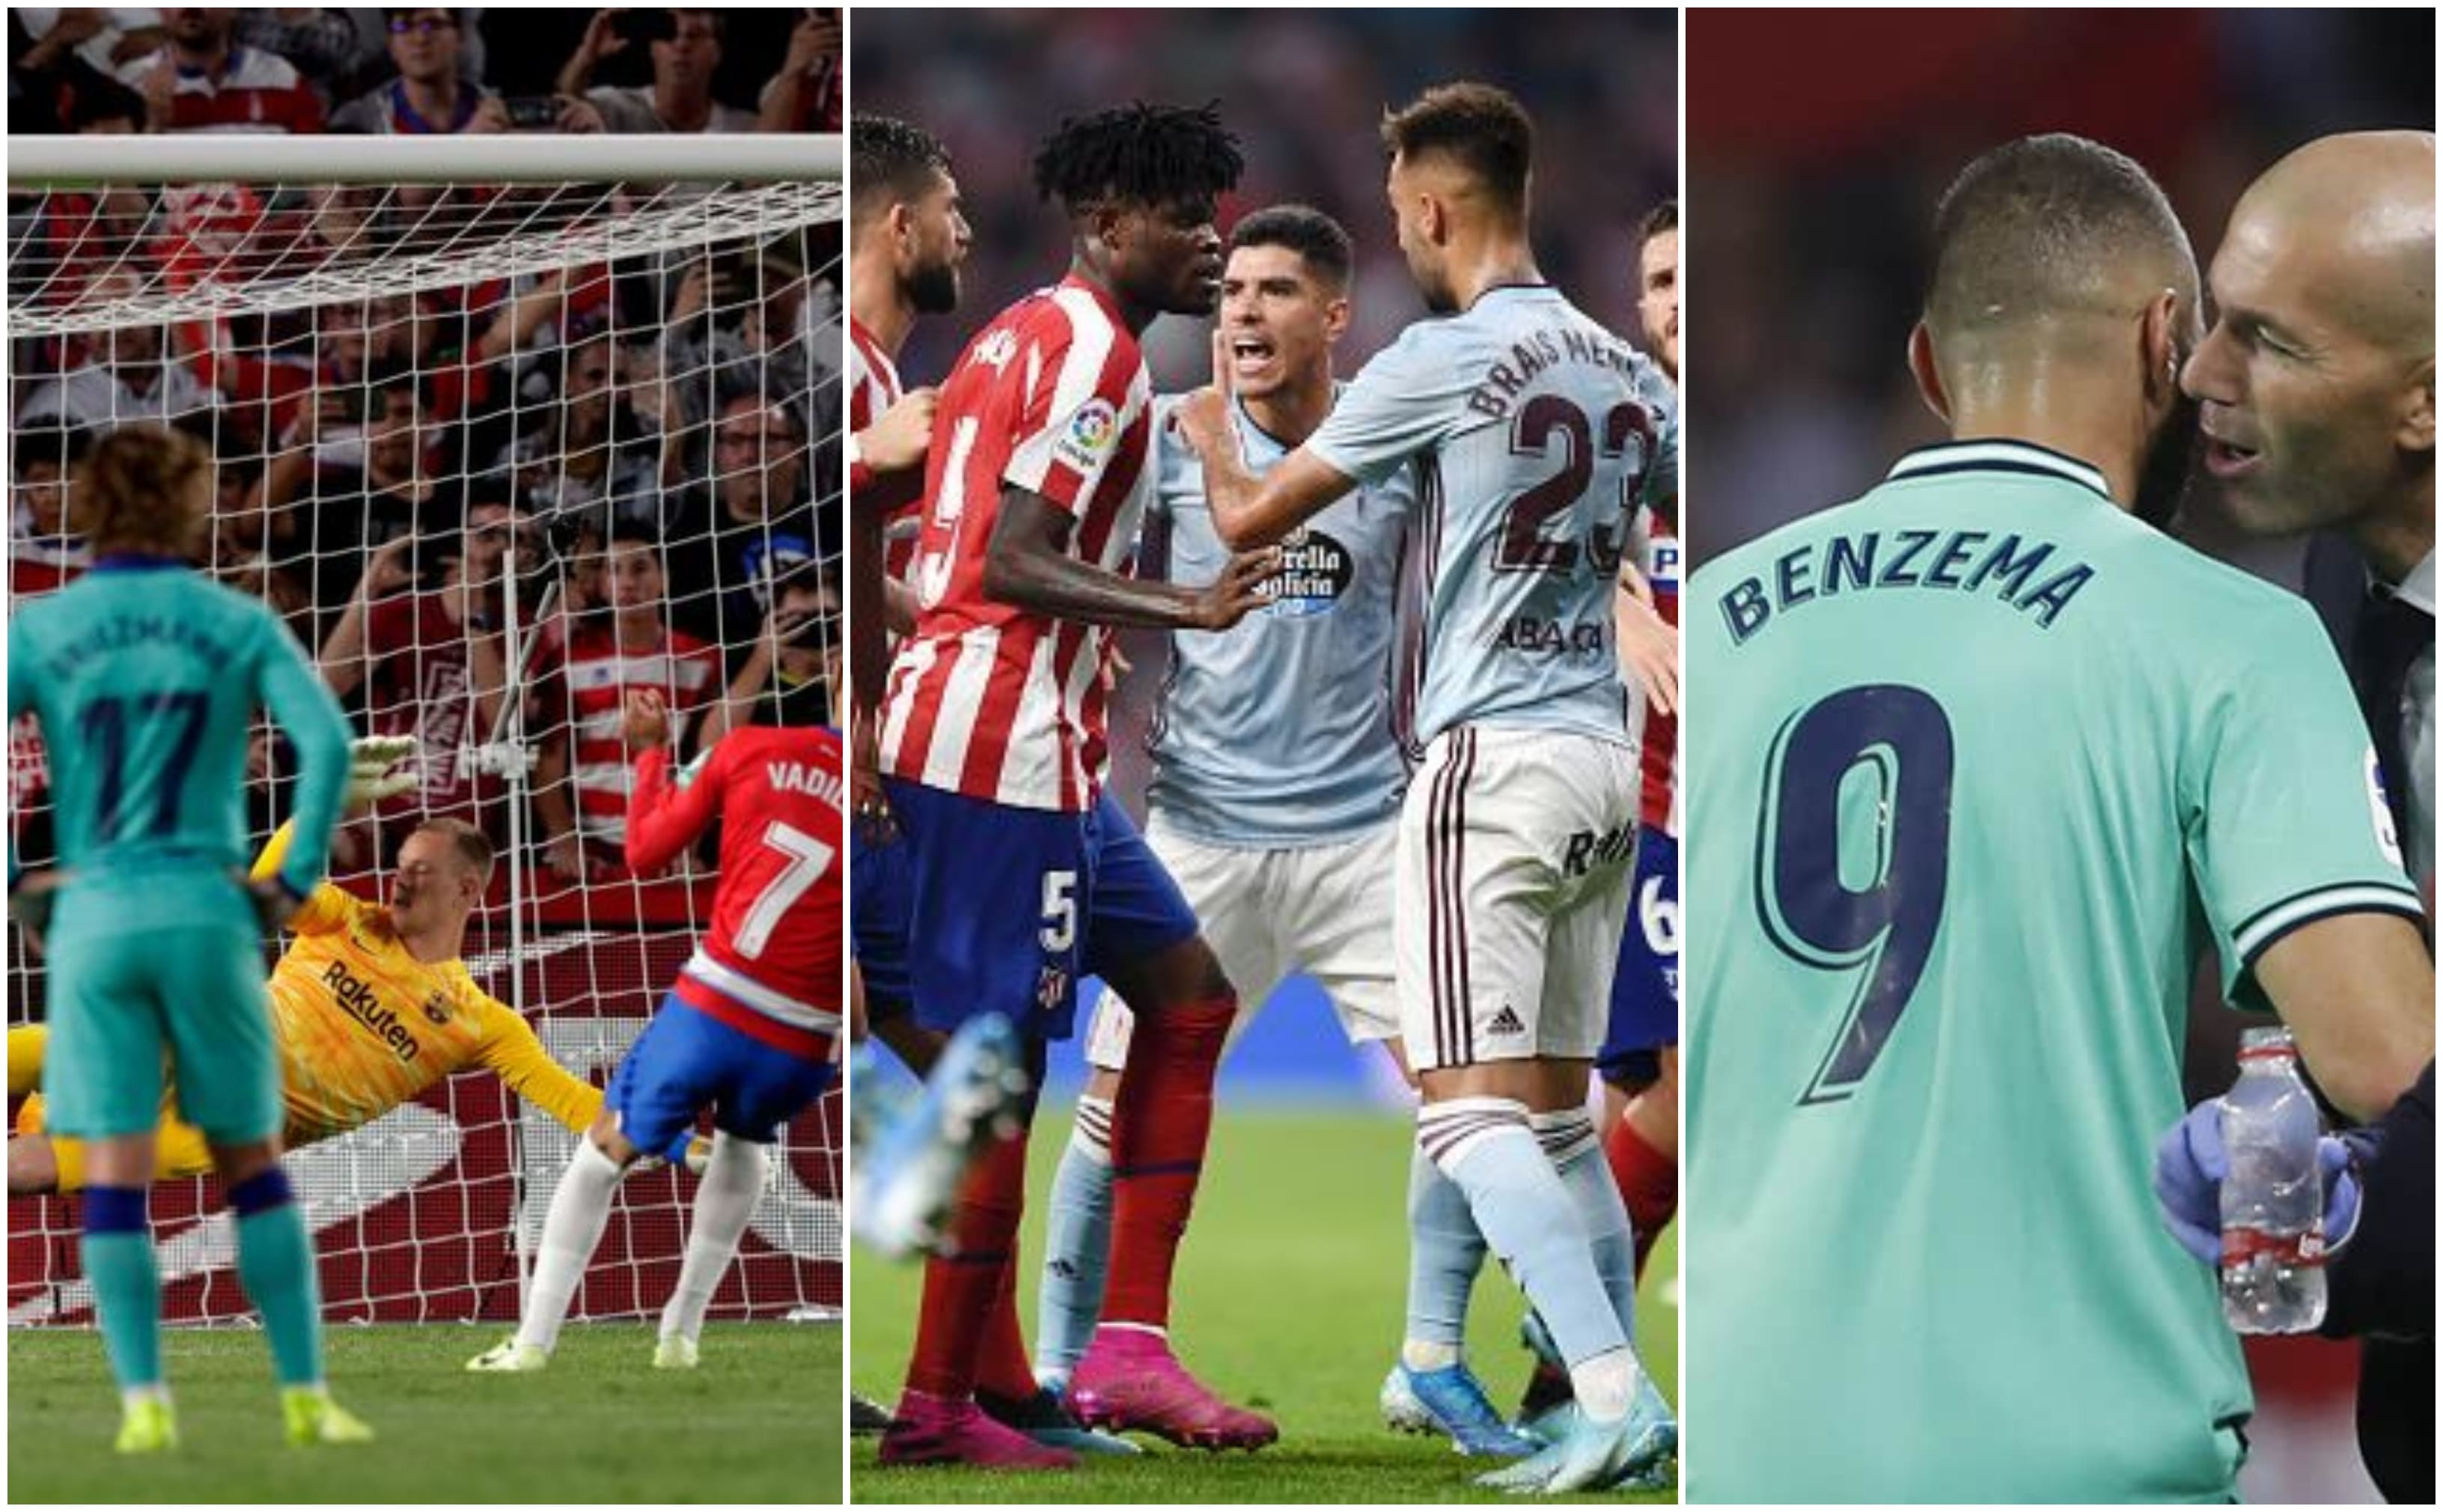 La Liga Match Day Five Round-Up from 21.09.2019